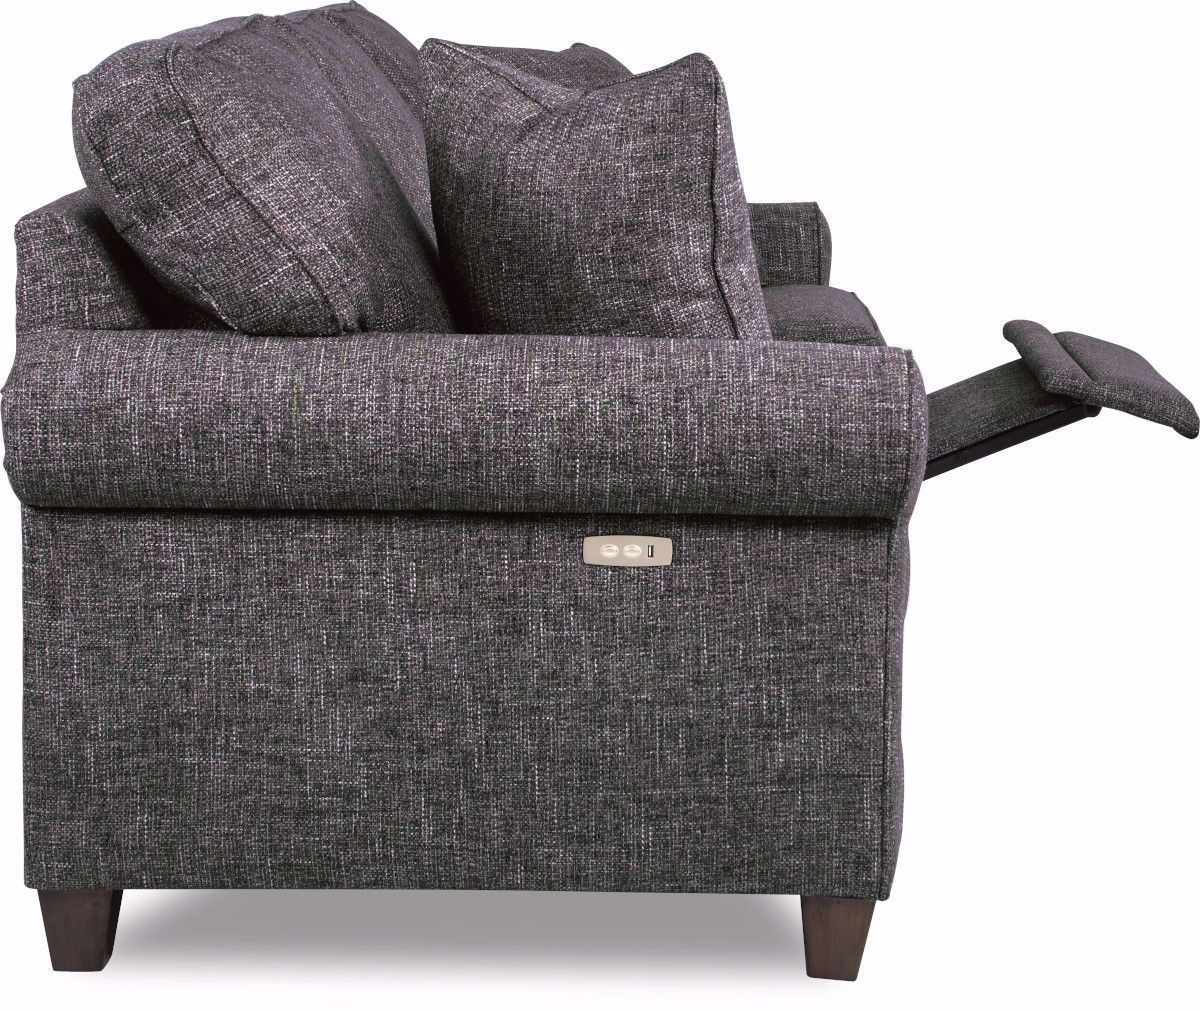 Picture of Colby Charcoal Power Recliner Sofa